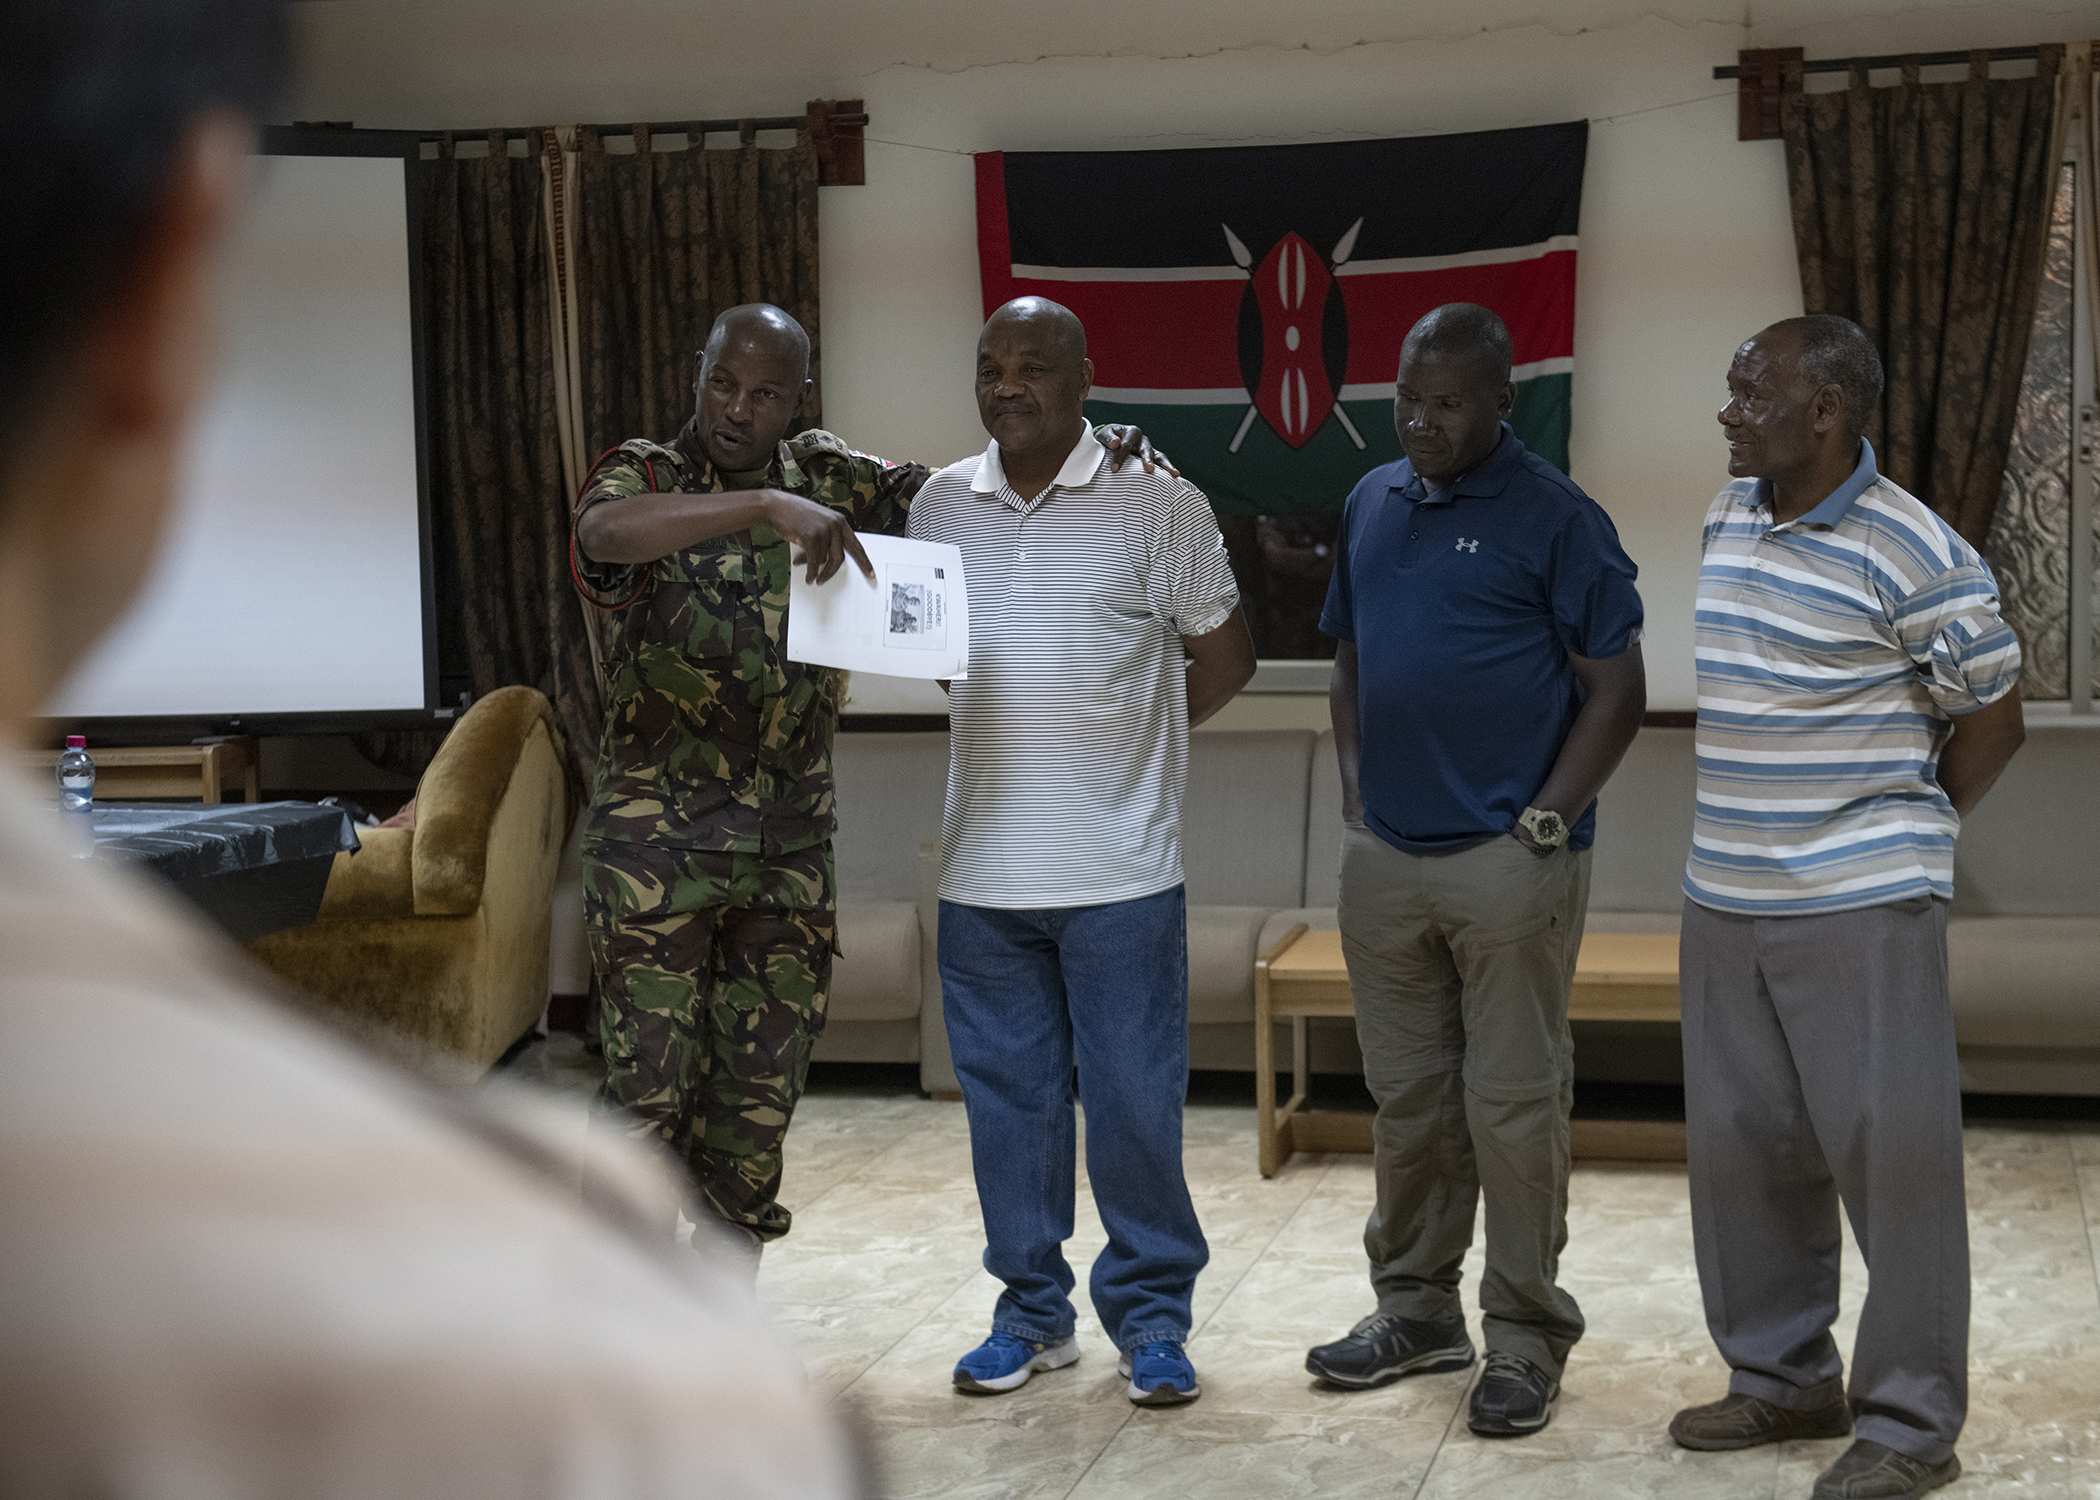 Kenya Defence Force Lt. Col. Victor Mburu, a foreign liaison officer assigned to Combined Joint Task Force-Horn of Africa (CJTF-HOA), introduces fellow countrymen who work on Camp Lemonnier, Djibouti, to multinational military partners while presenting information on his home country during a cultural exchange event at Camp Lemonnier, March 27, 2019. CJTF-HOA holds monthly exchange events with multinational military partners affiliated with Camp Lemonnier to strengthen alliances and attract new partners in the combined joint military environment. (U.S. Air Force photo by Tech. Sgt. Shawn Nickel)